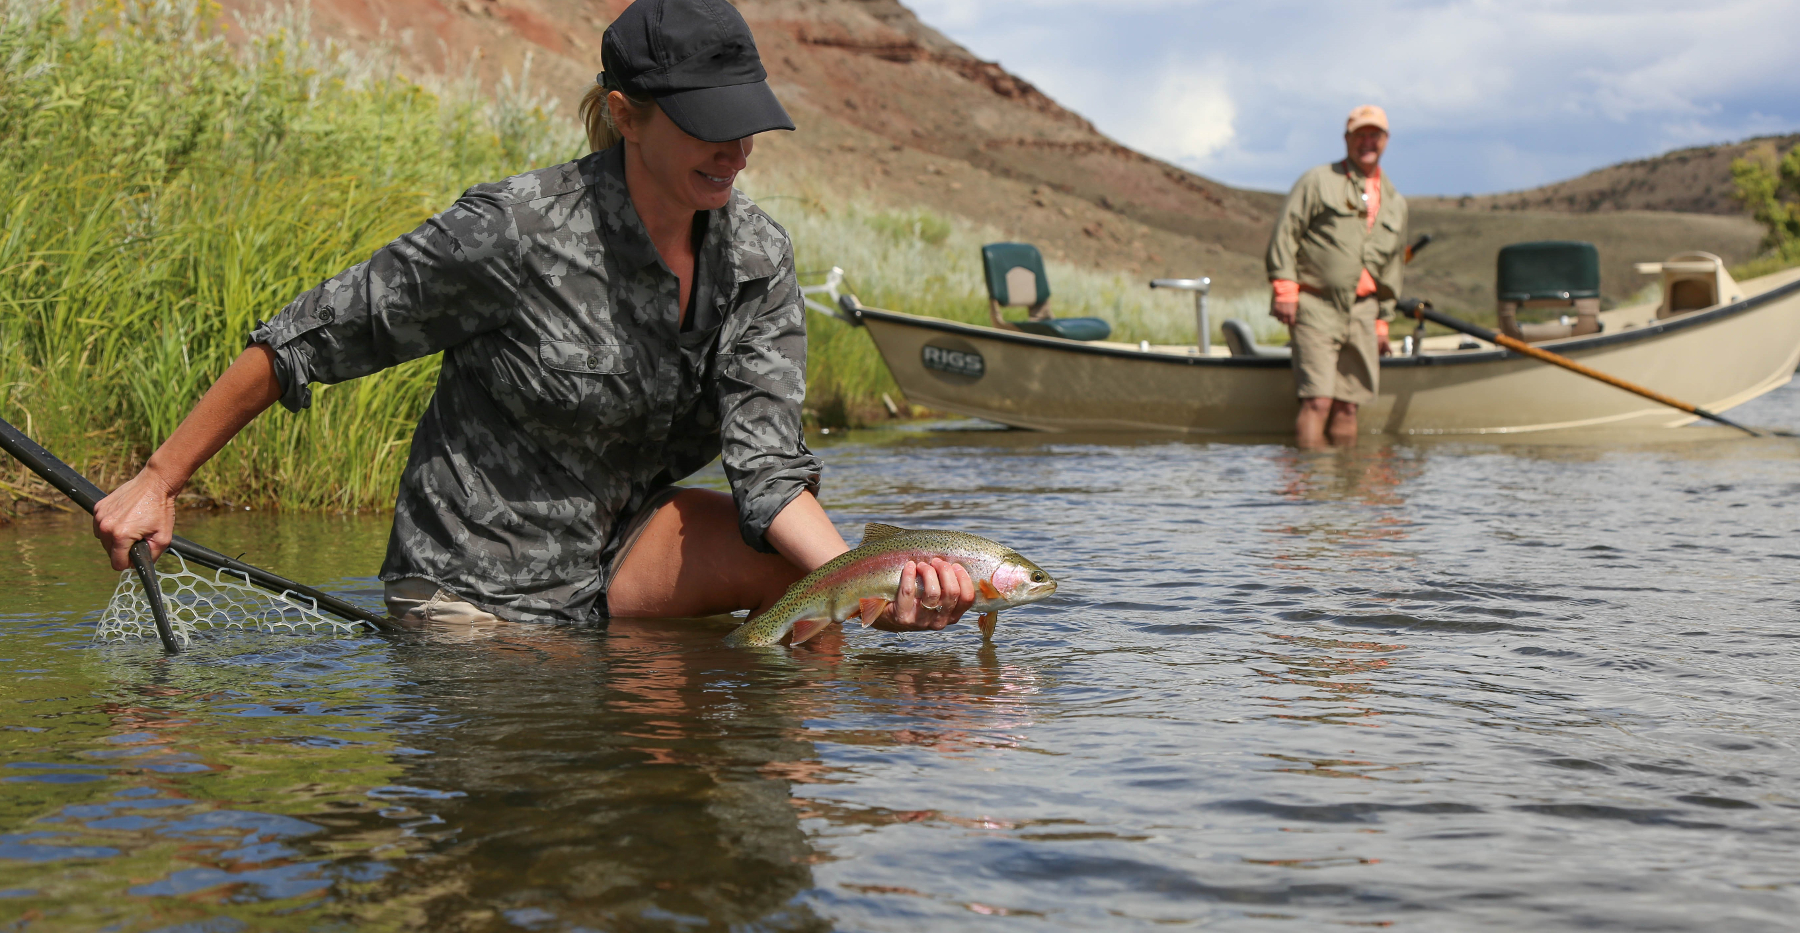 Rigs adventure co fly shop fly fishing guide service and for Gunnison river fishing